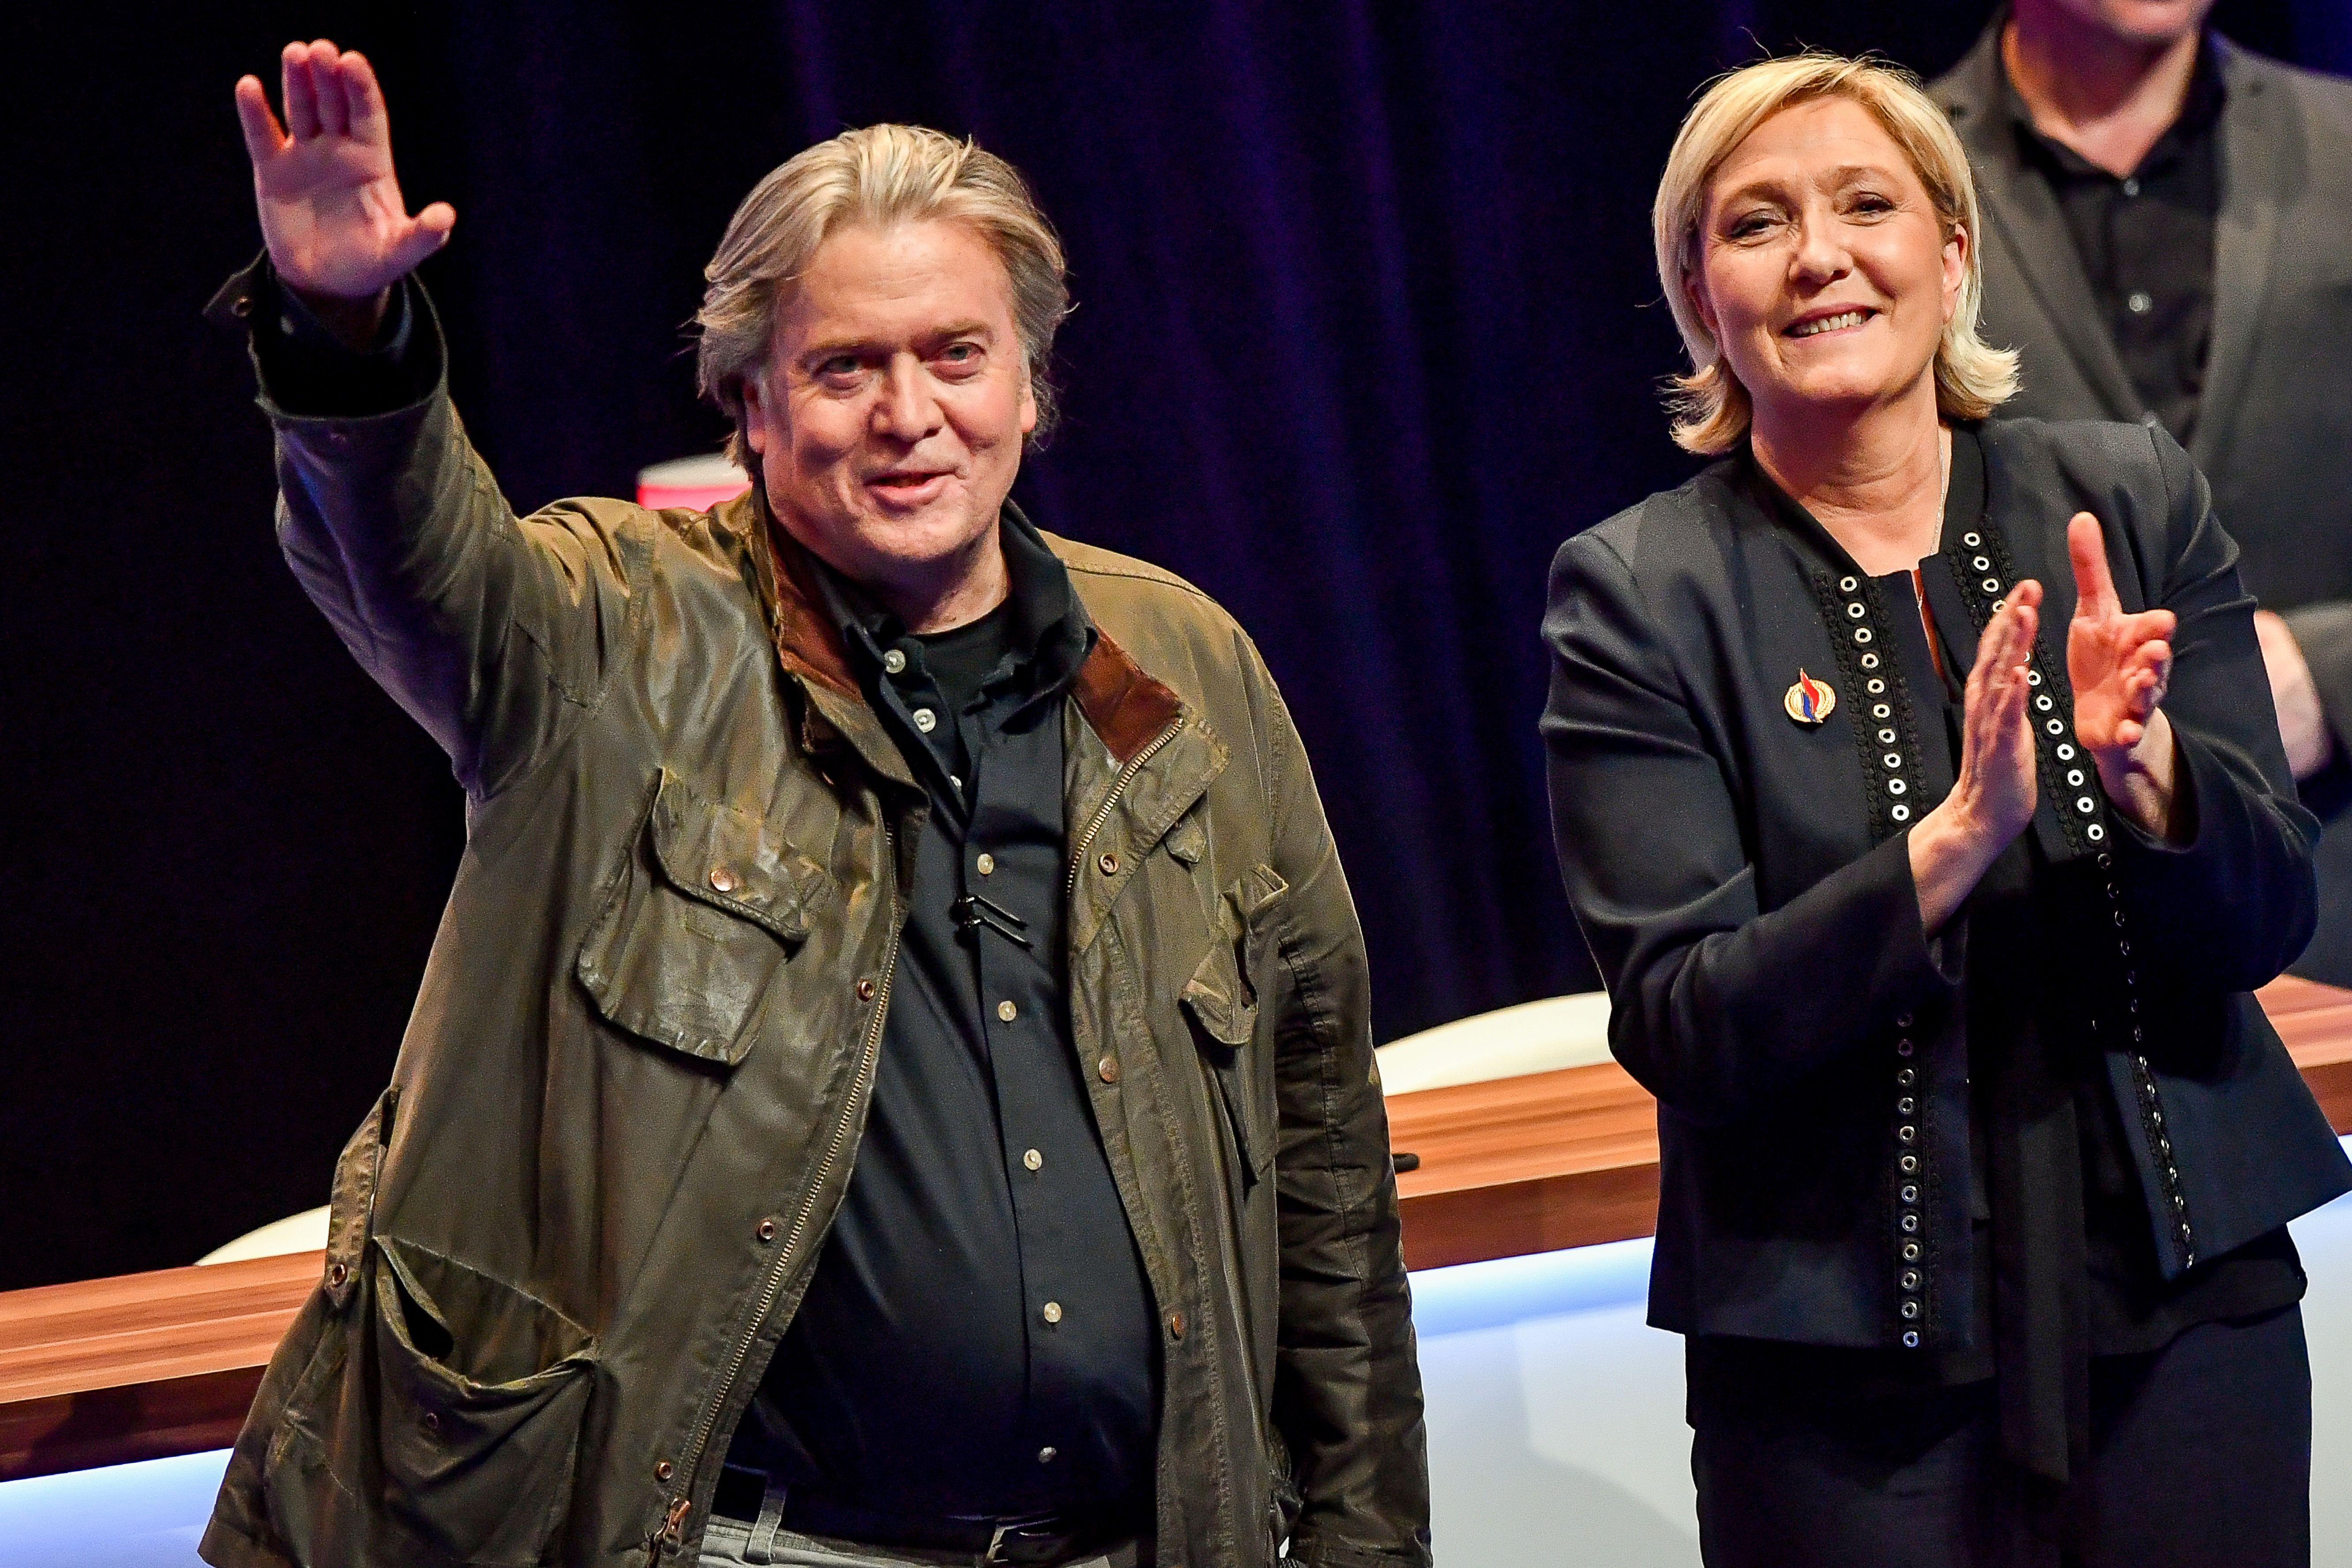 Marine Le Pen re-elected unopposed as leader of France's Front National after Steve Bannon says to wear 'racist' tag like 'badge of honour'